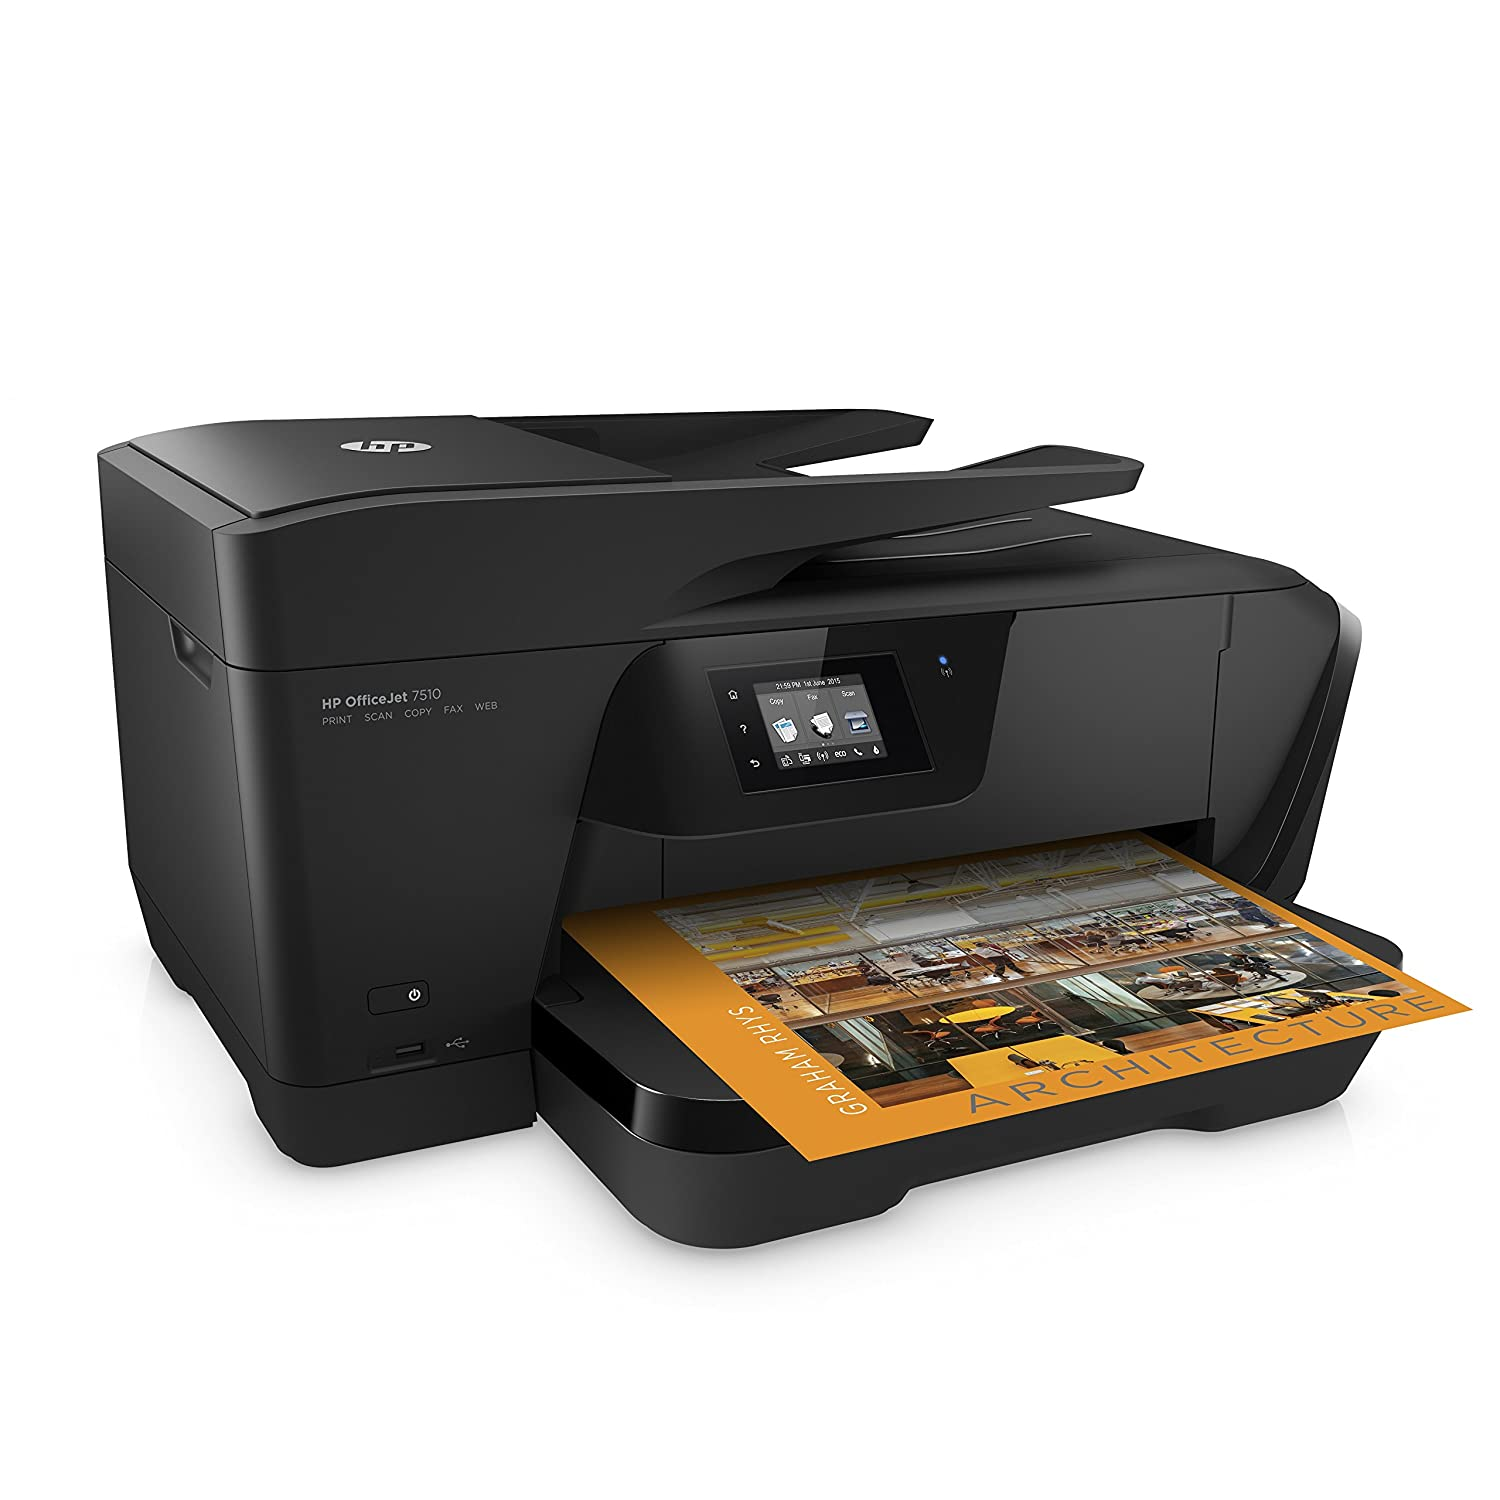 Amazon.com: HP OfficeJet 7510 Wide Format All-in-One Printer with Wireless  & Mobile Printing (G3J47A): Electronics